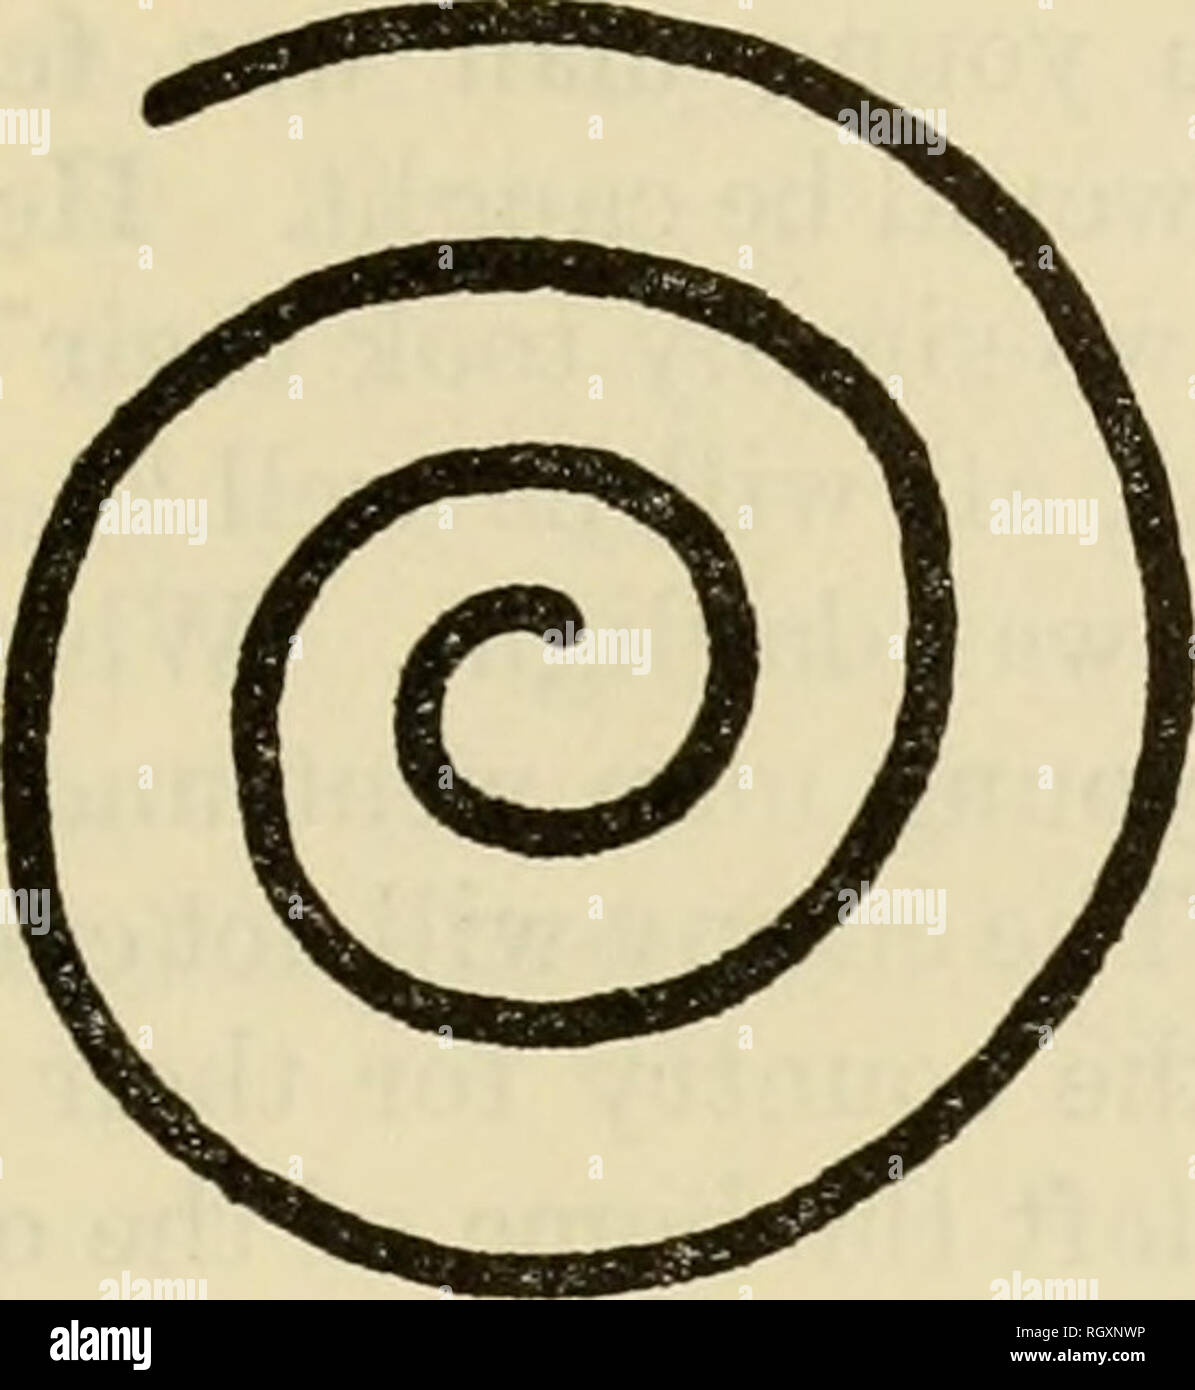 Spiral Symbol Meaning Native American Wwwtopsimagescom